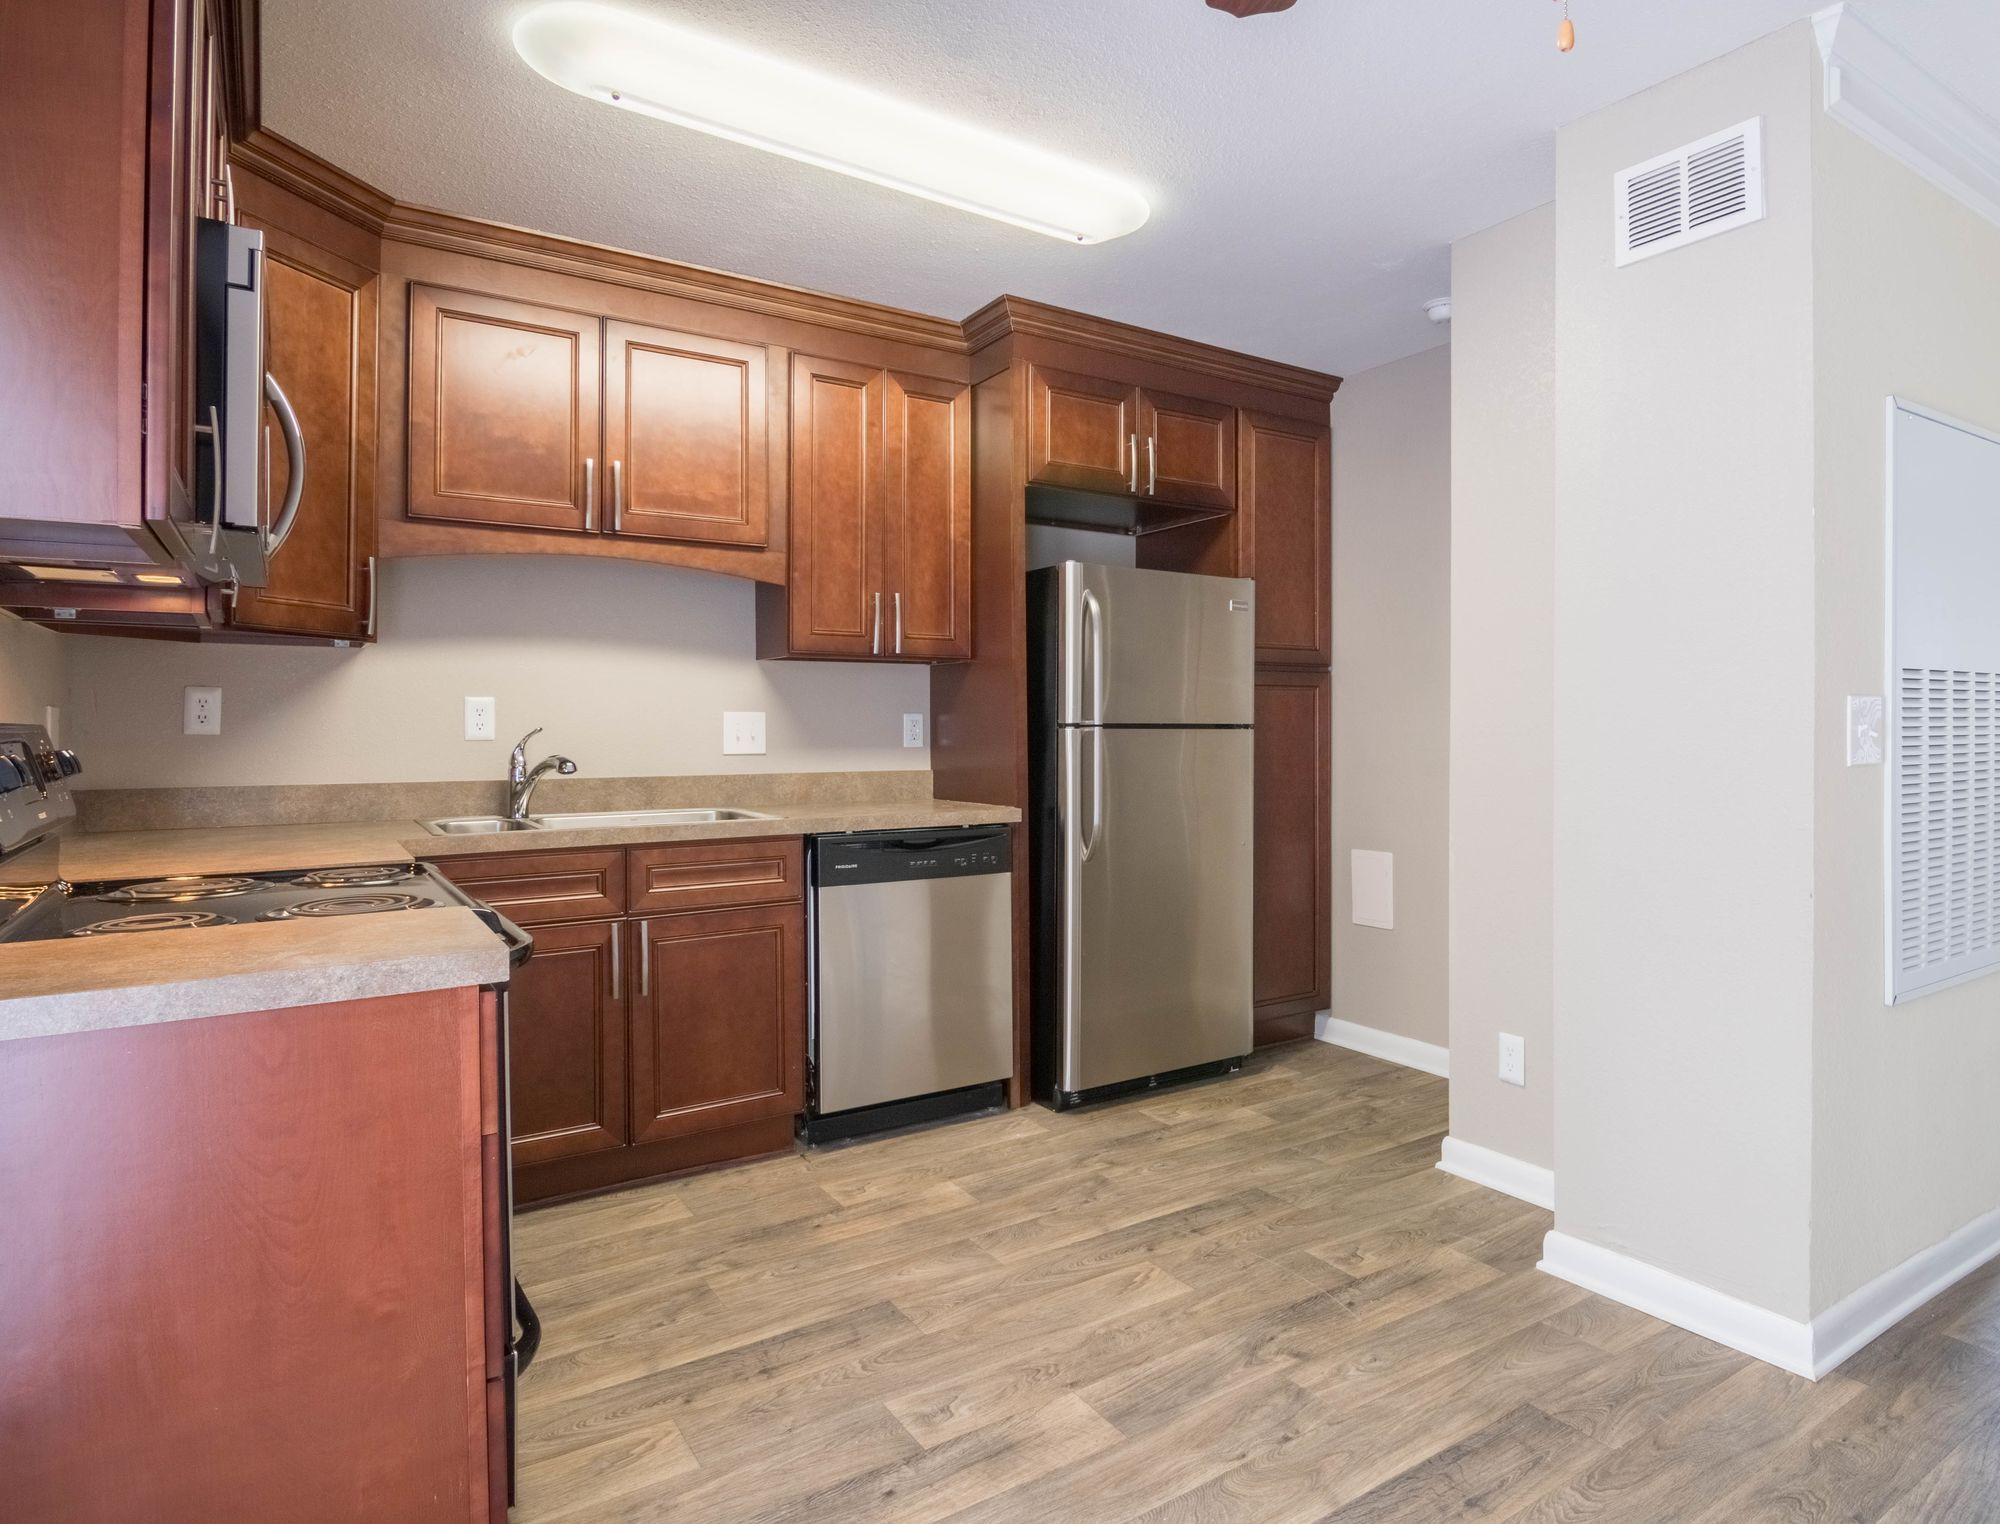 Apartments Near UNC Charlotte Aurora for University of North Carolina at Charlotte Students in Charlotte, NC